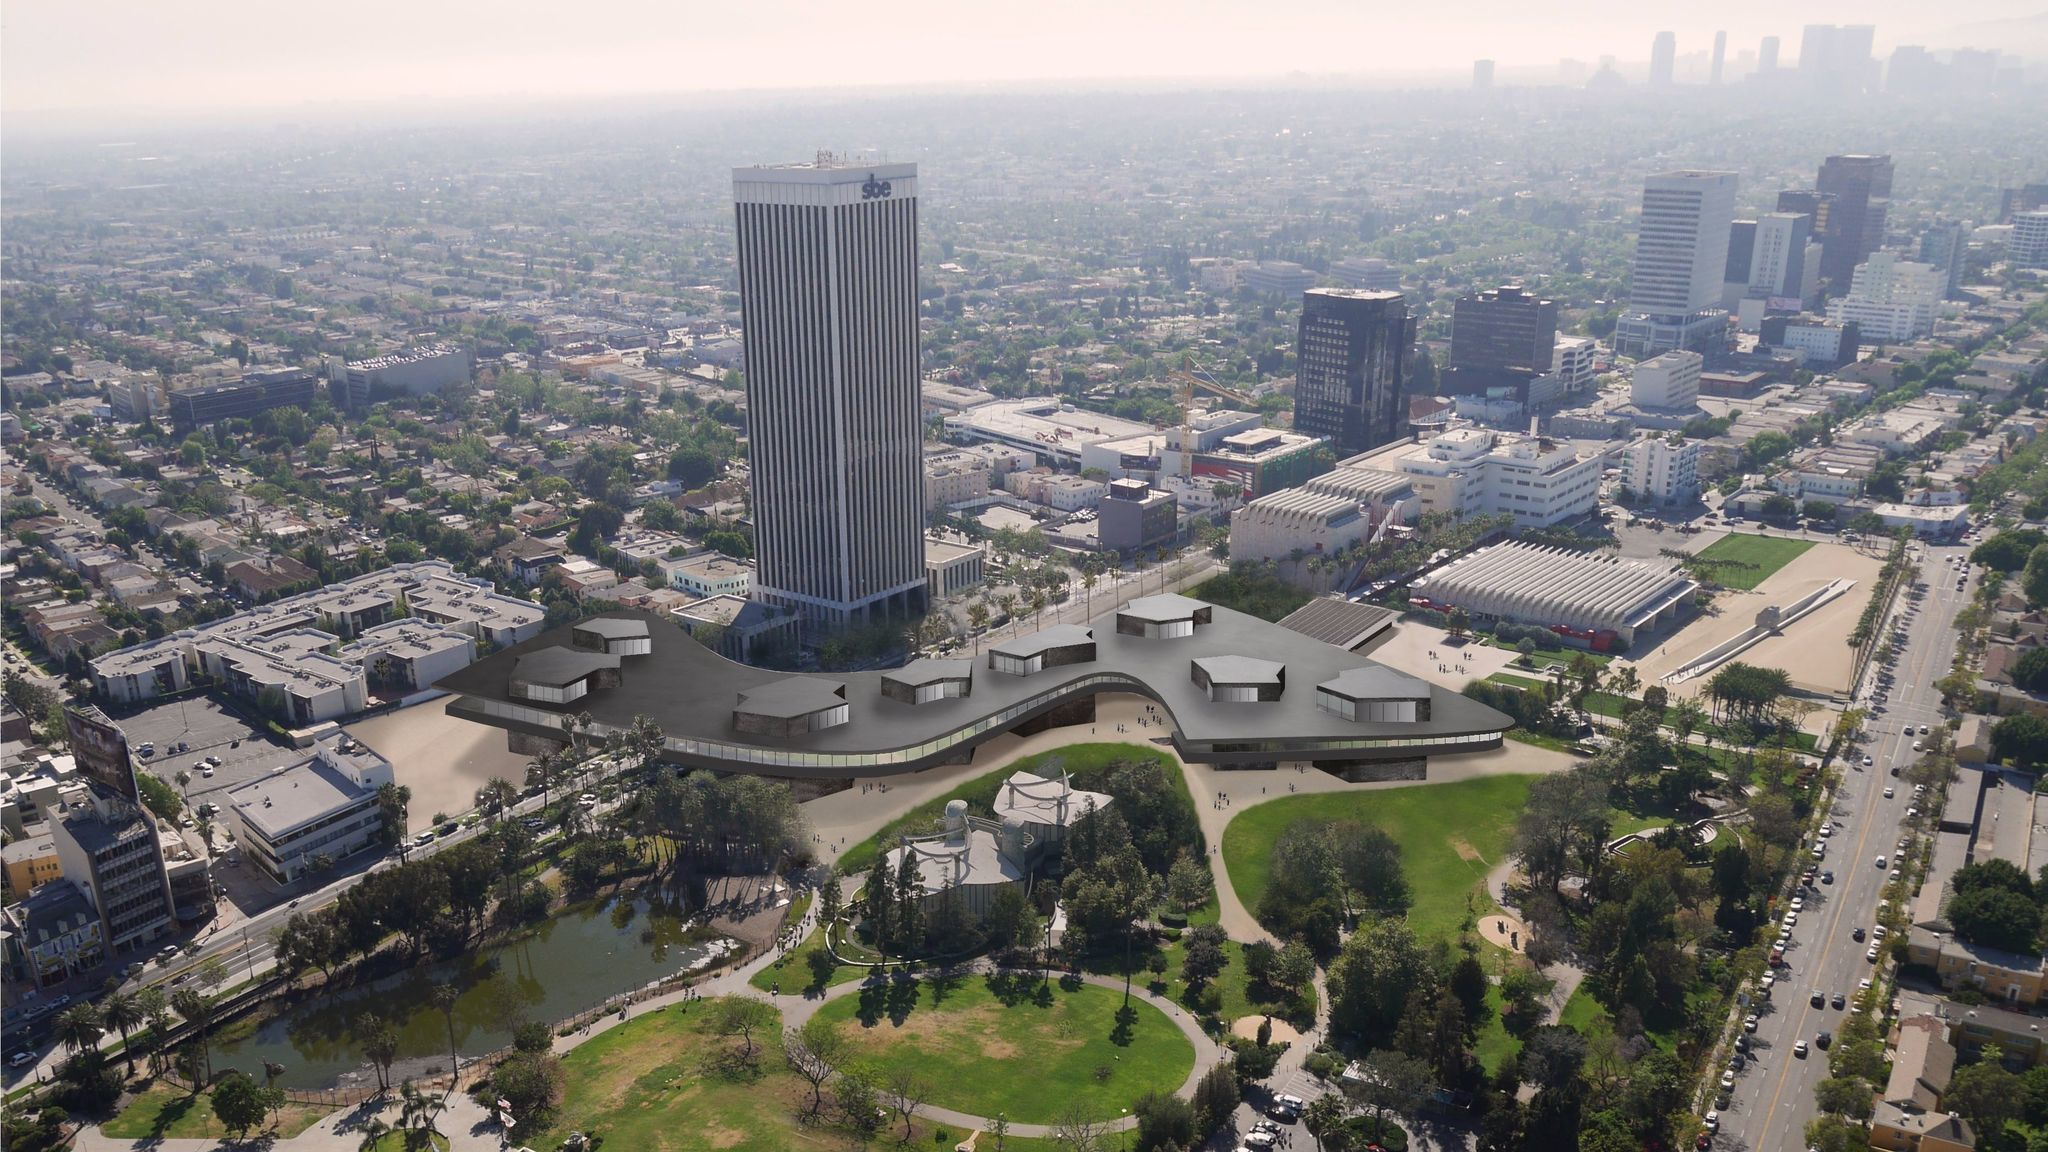 A rendering released last year showing the 2016 iteration of Peter Zumthor's design, which was more angular and crossed Wilshire Boulevard.